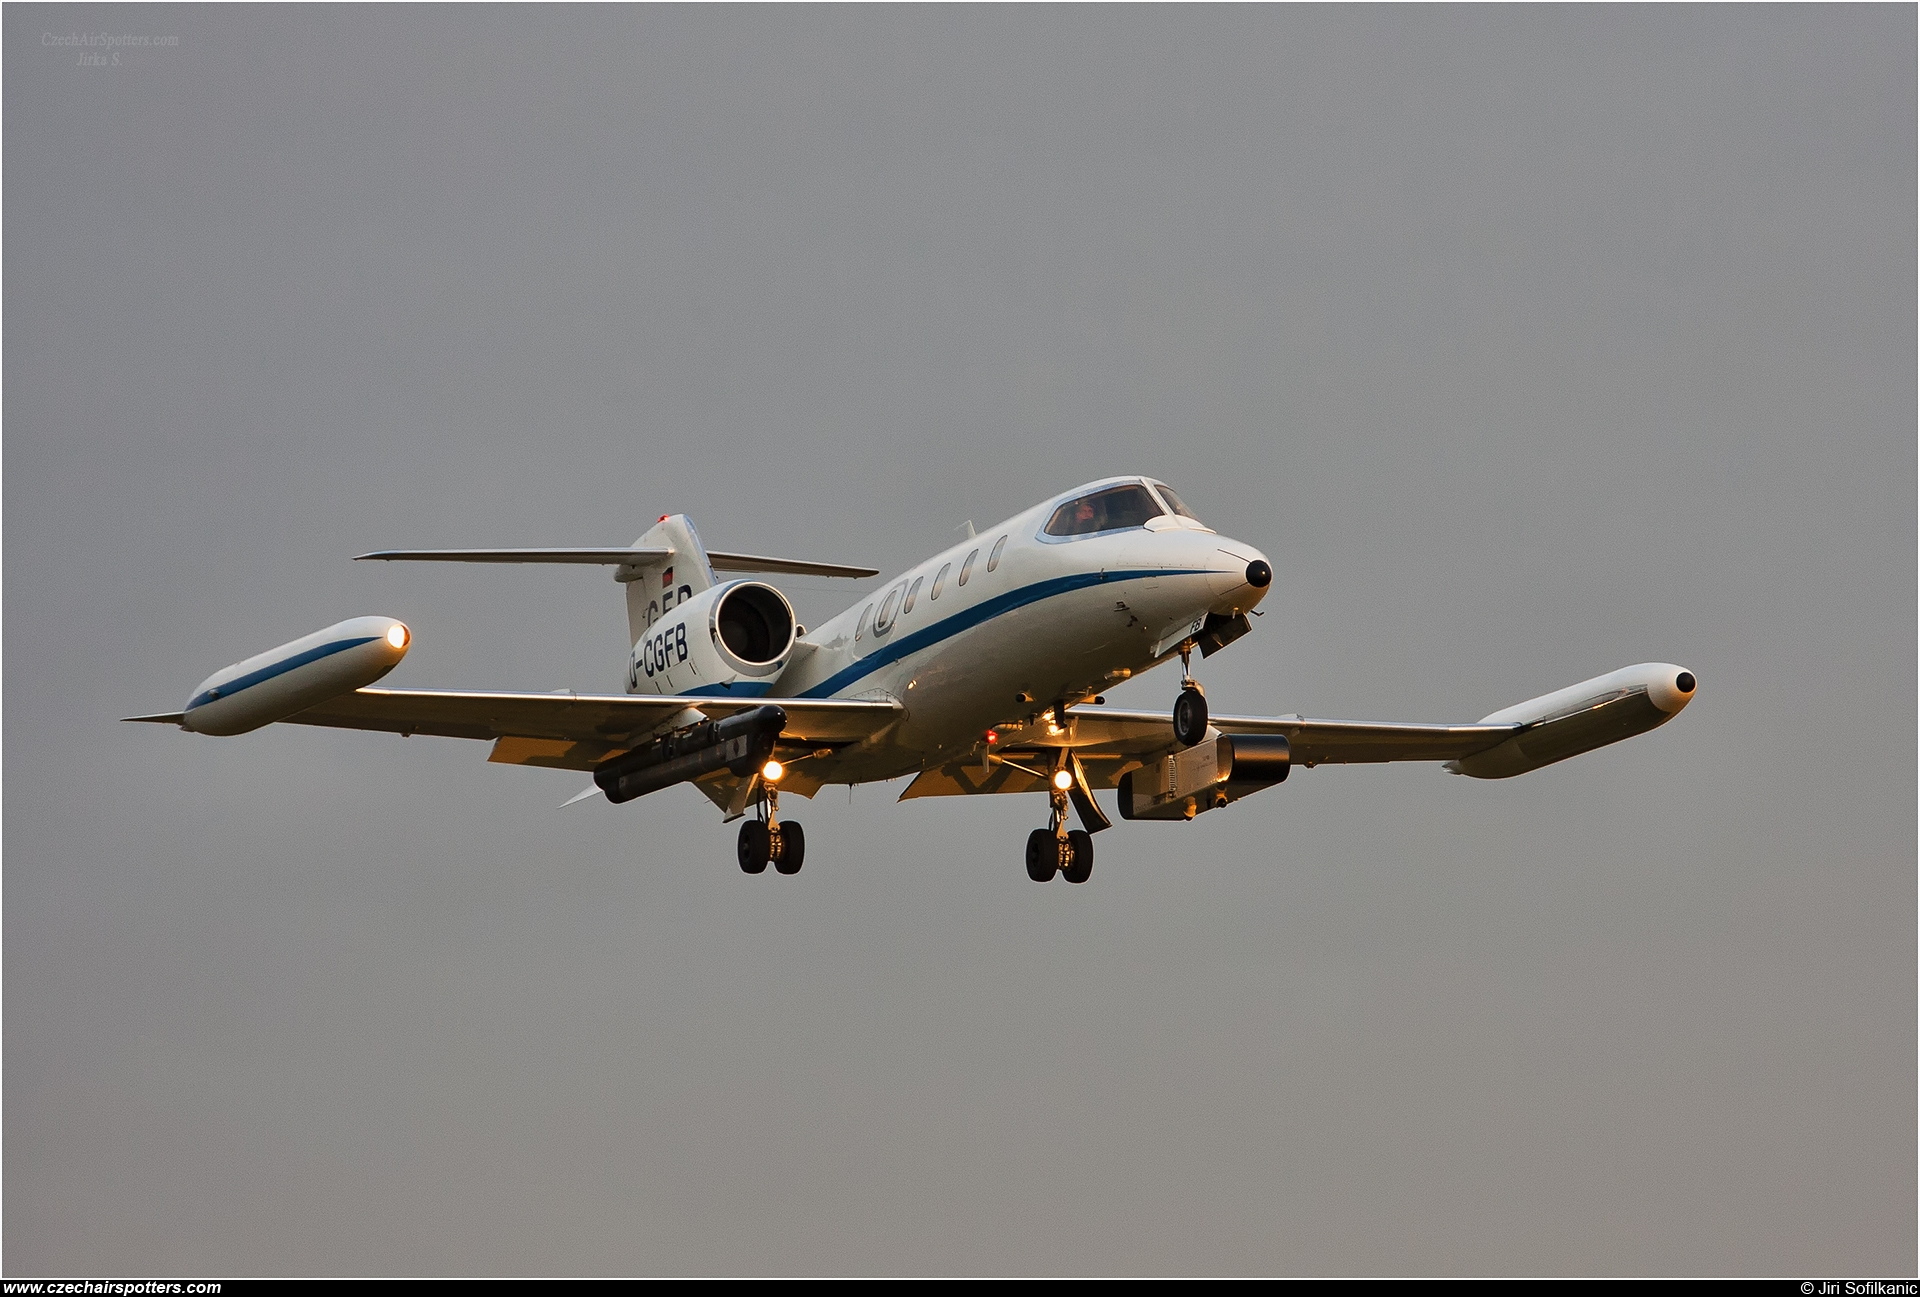 GFD – Bombardier Gates Learjet UC-35A D-CGFB